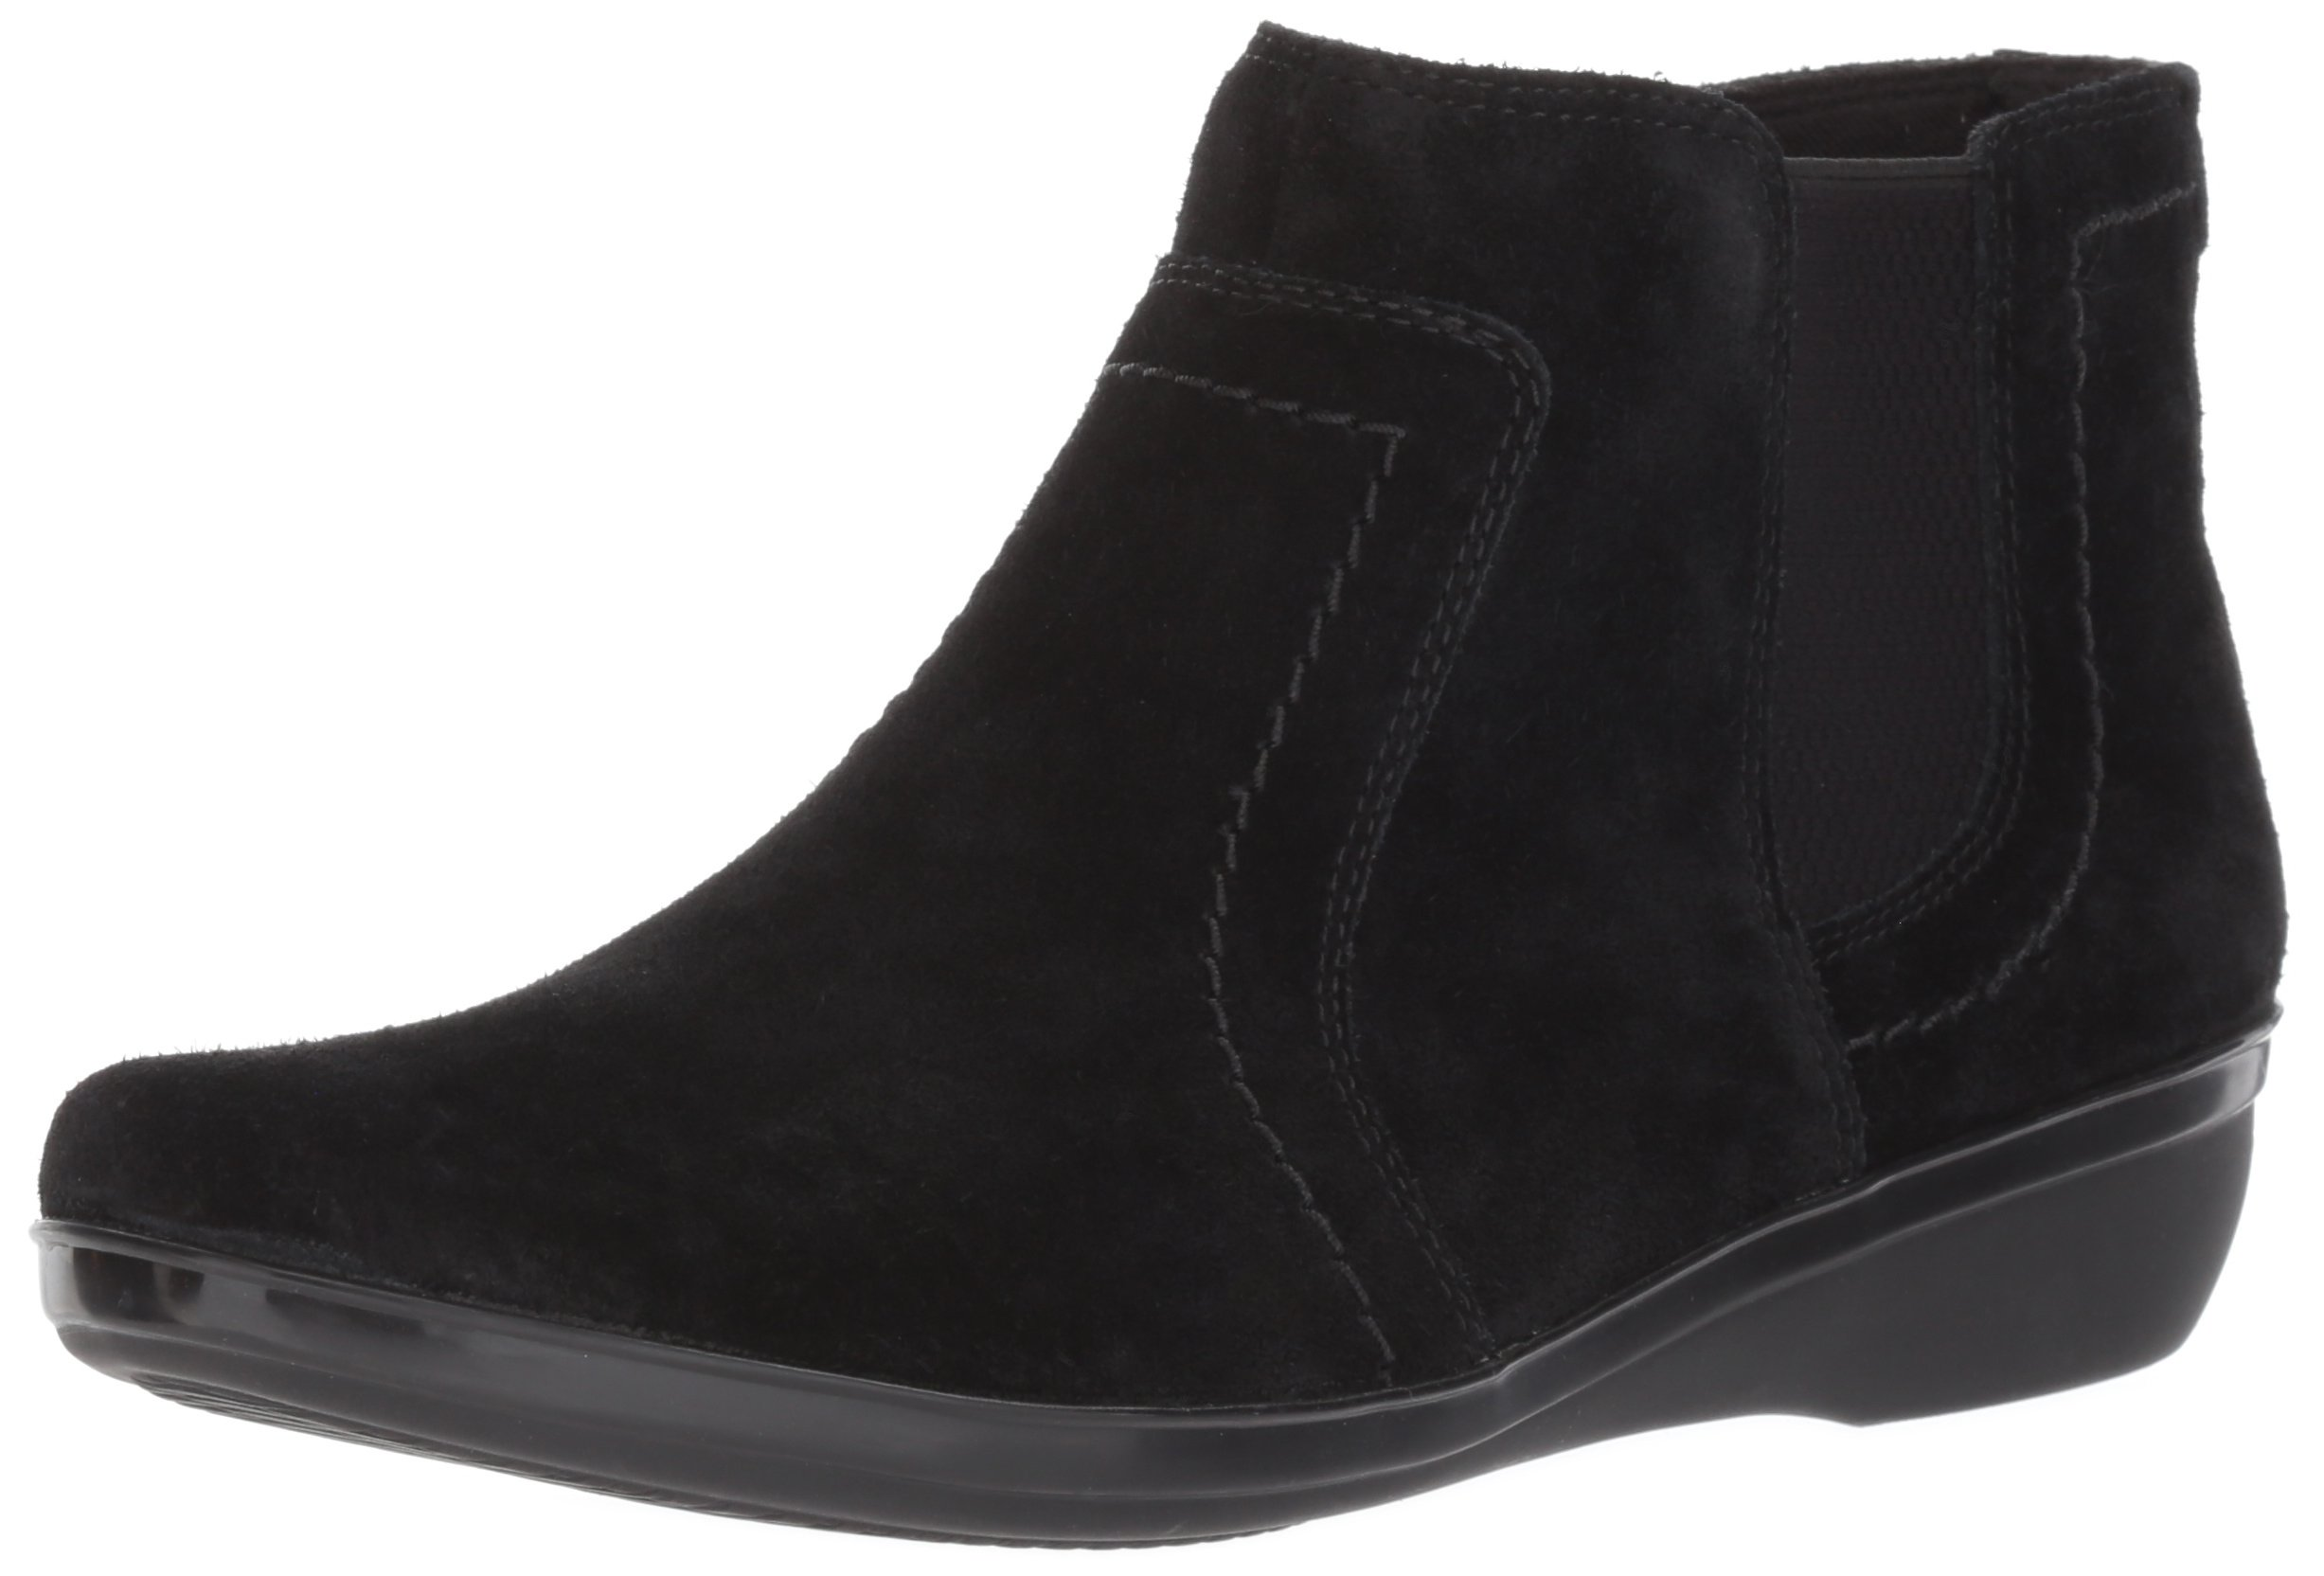 CLARKS Women's Everlay Leigh Ankle Bootie, Black Suede, 11 M US